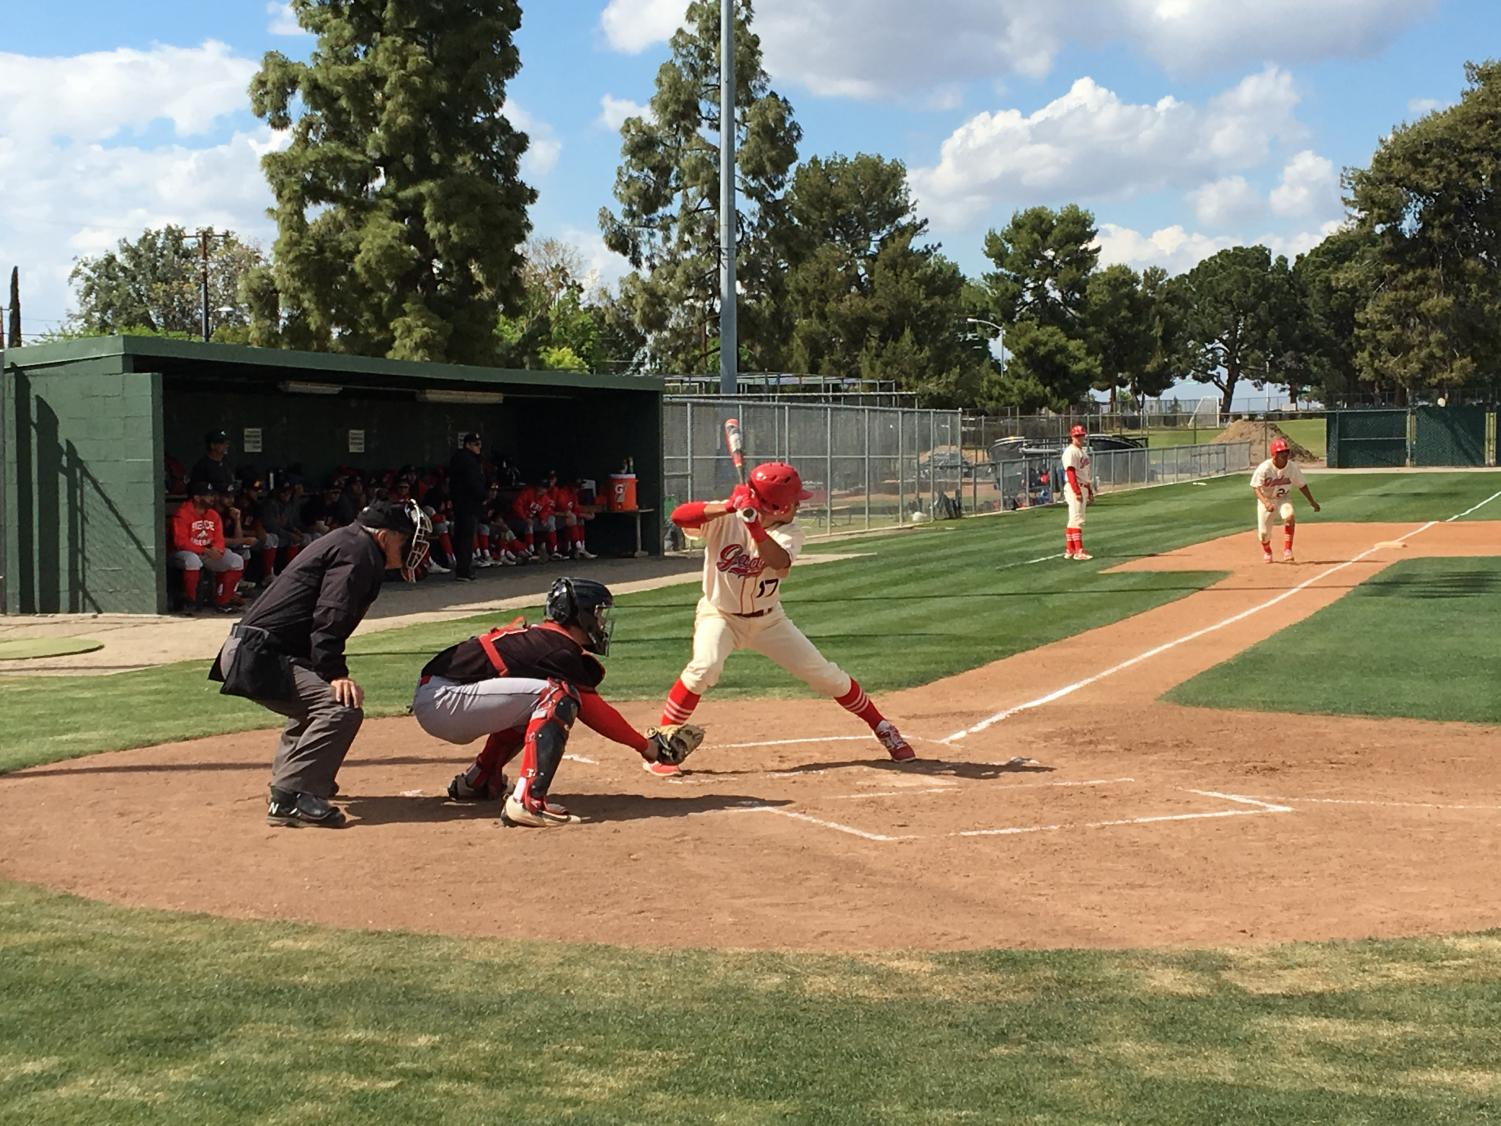 Bakersfield College player Joe Pineda preparing for a pitch against LA Pierce in the bottom of the second inning on April 19.